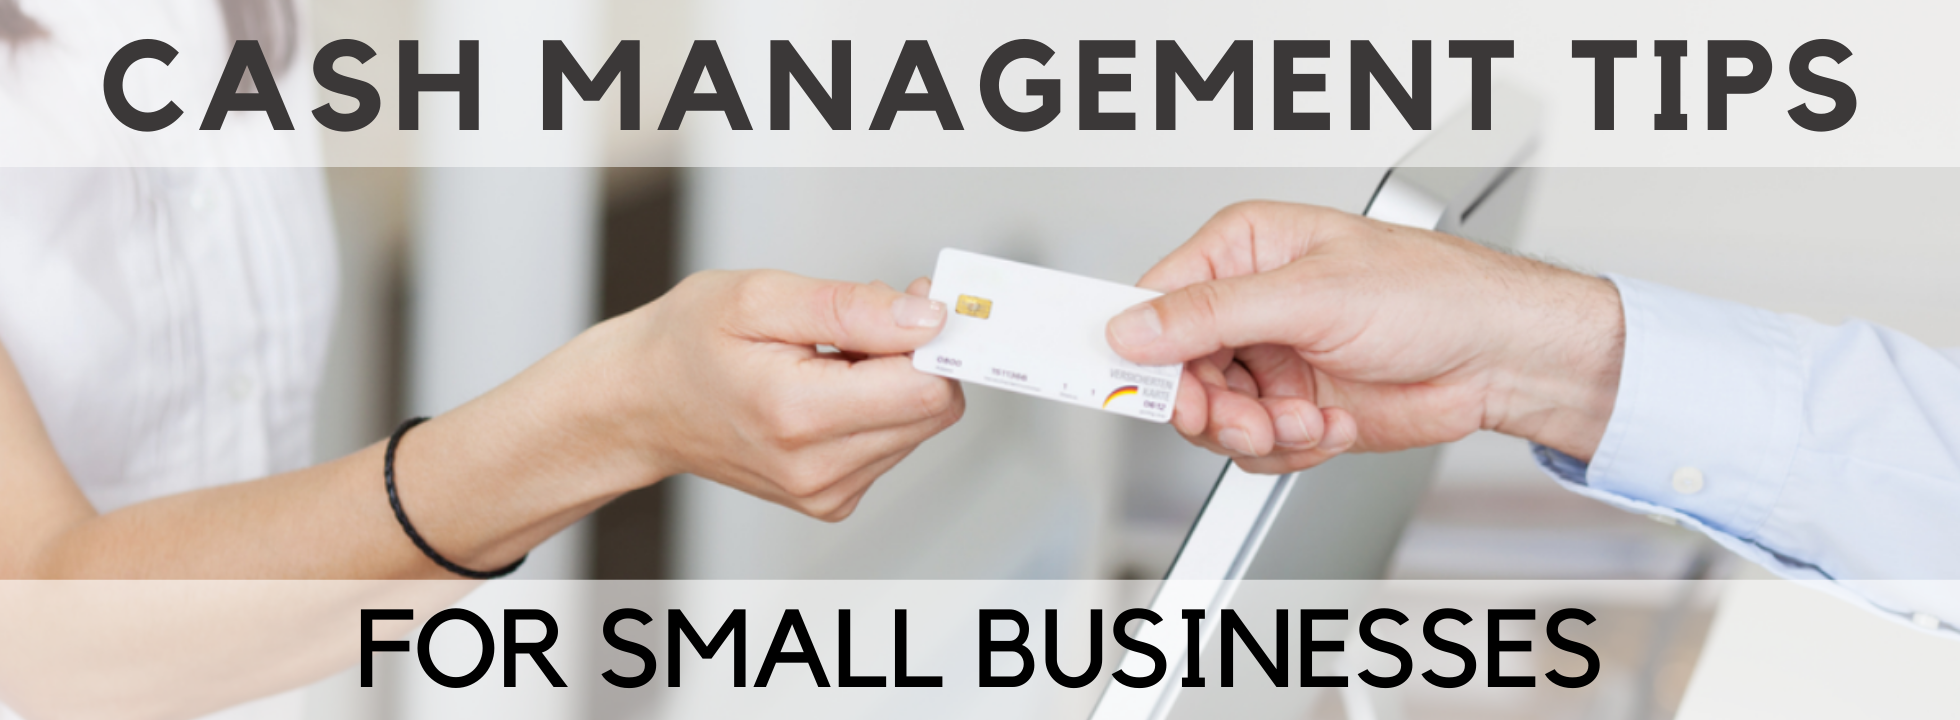 Cash Management Tips